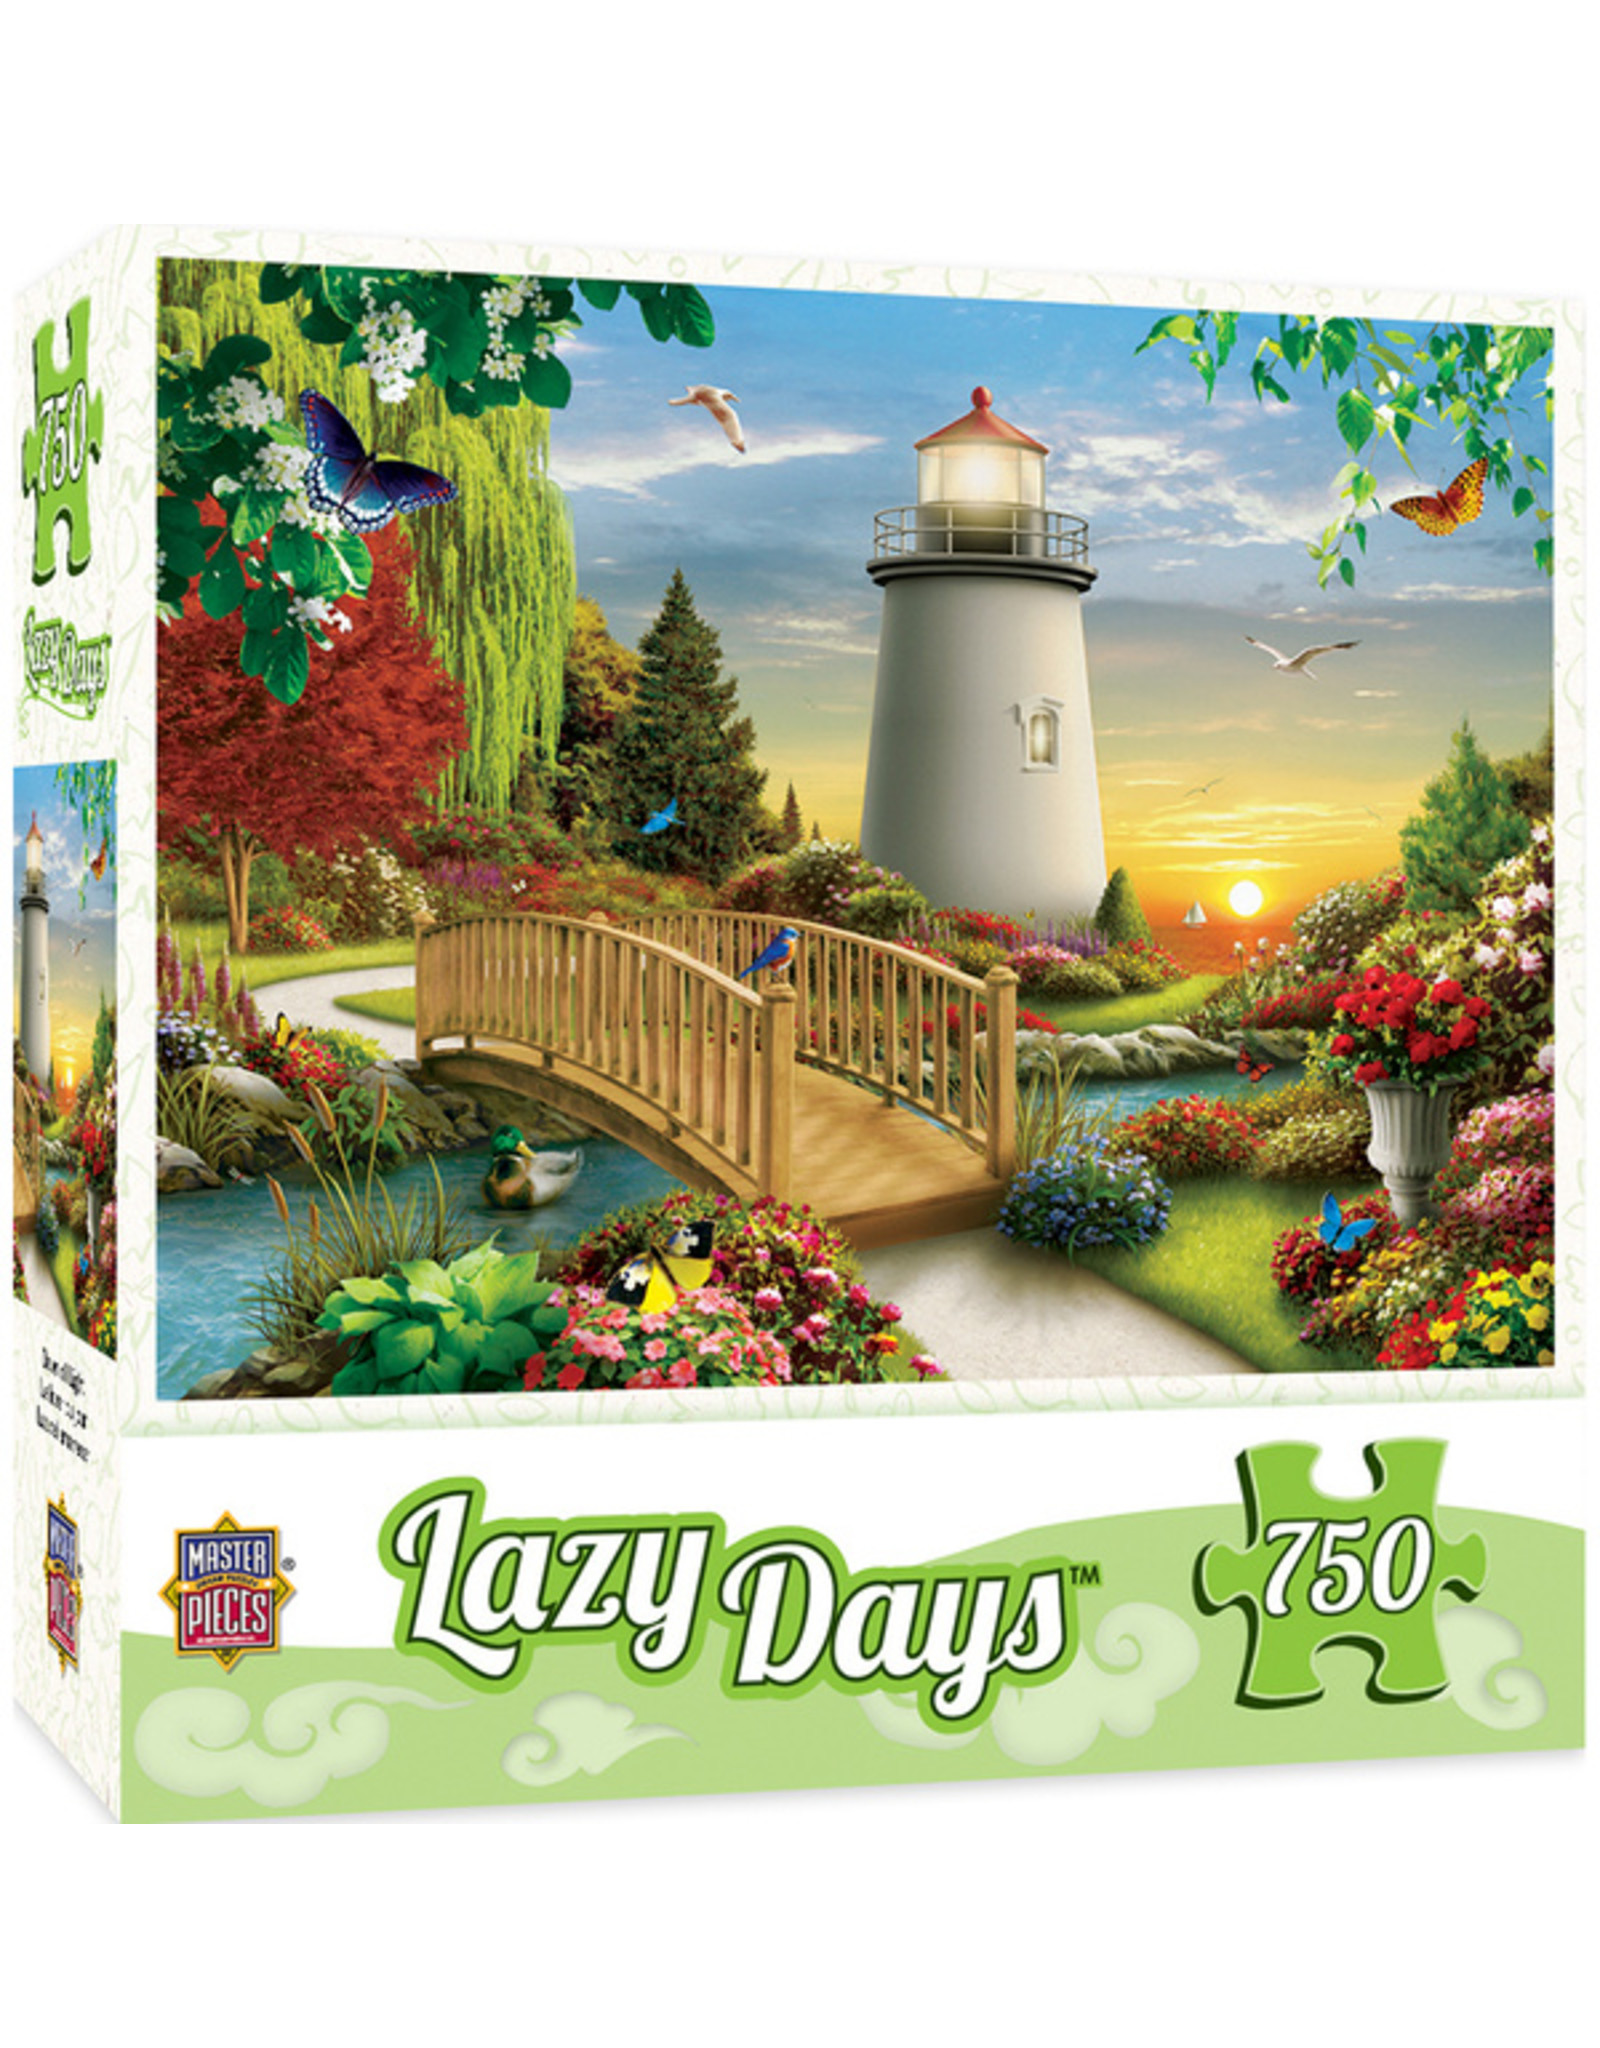 Master Pieces Lazy Days - Dawn of Light 750 pc